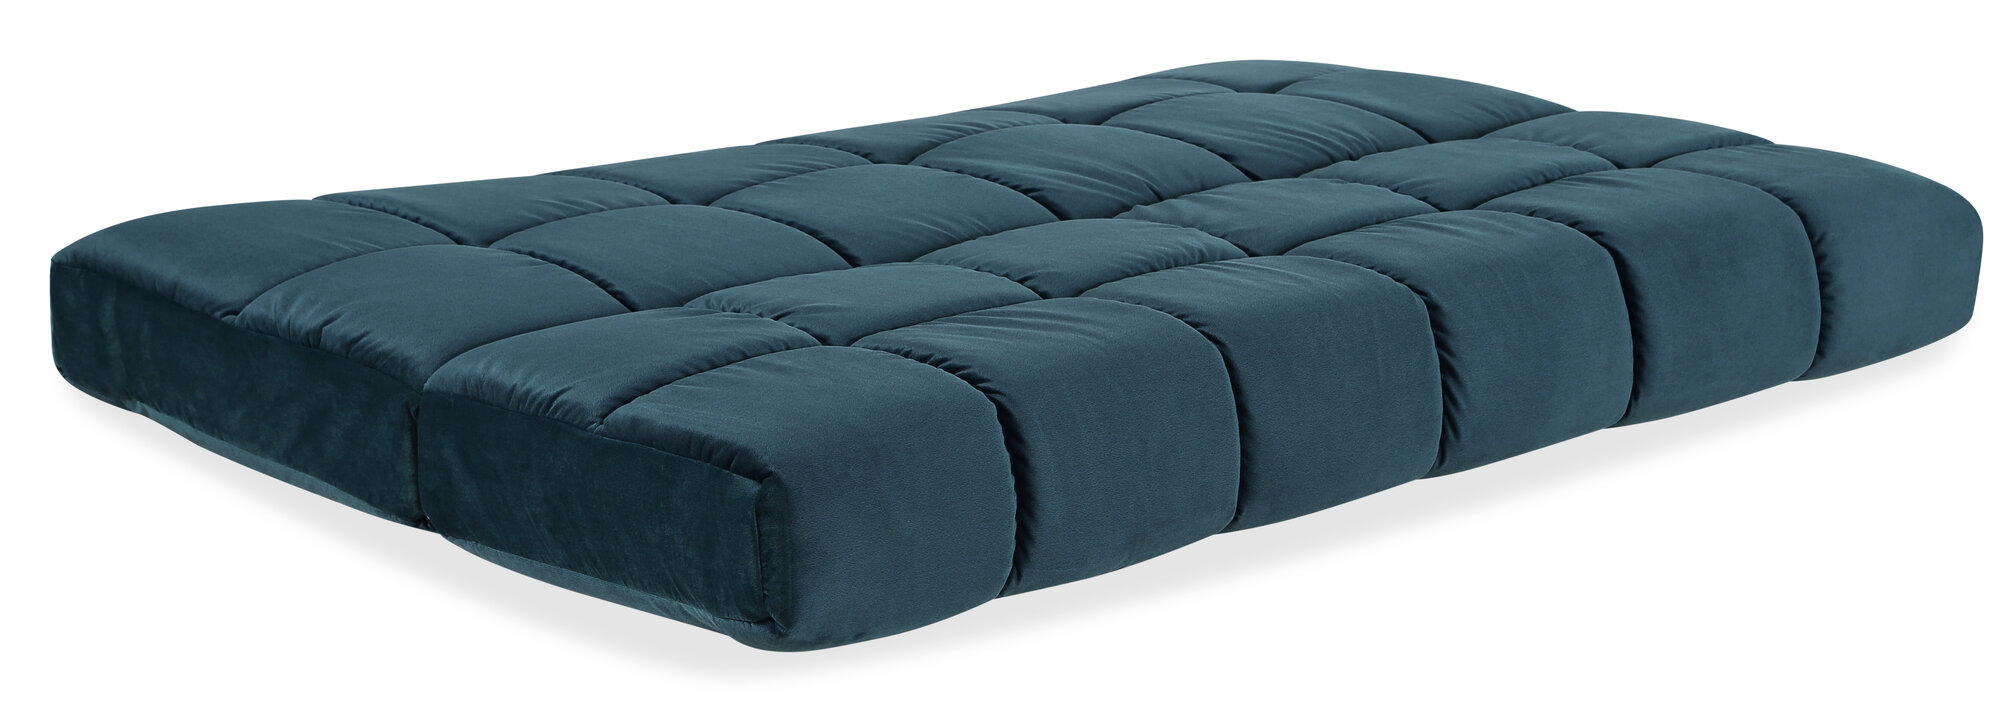 Pillow Top Futon Mattress Minimalist Sofa Bed With Storage